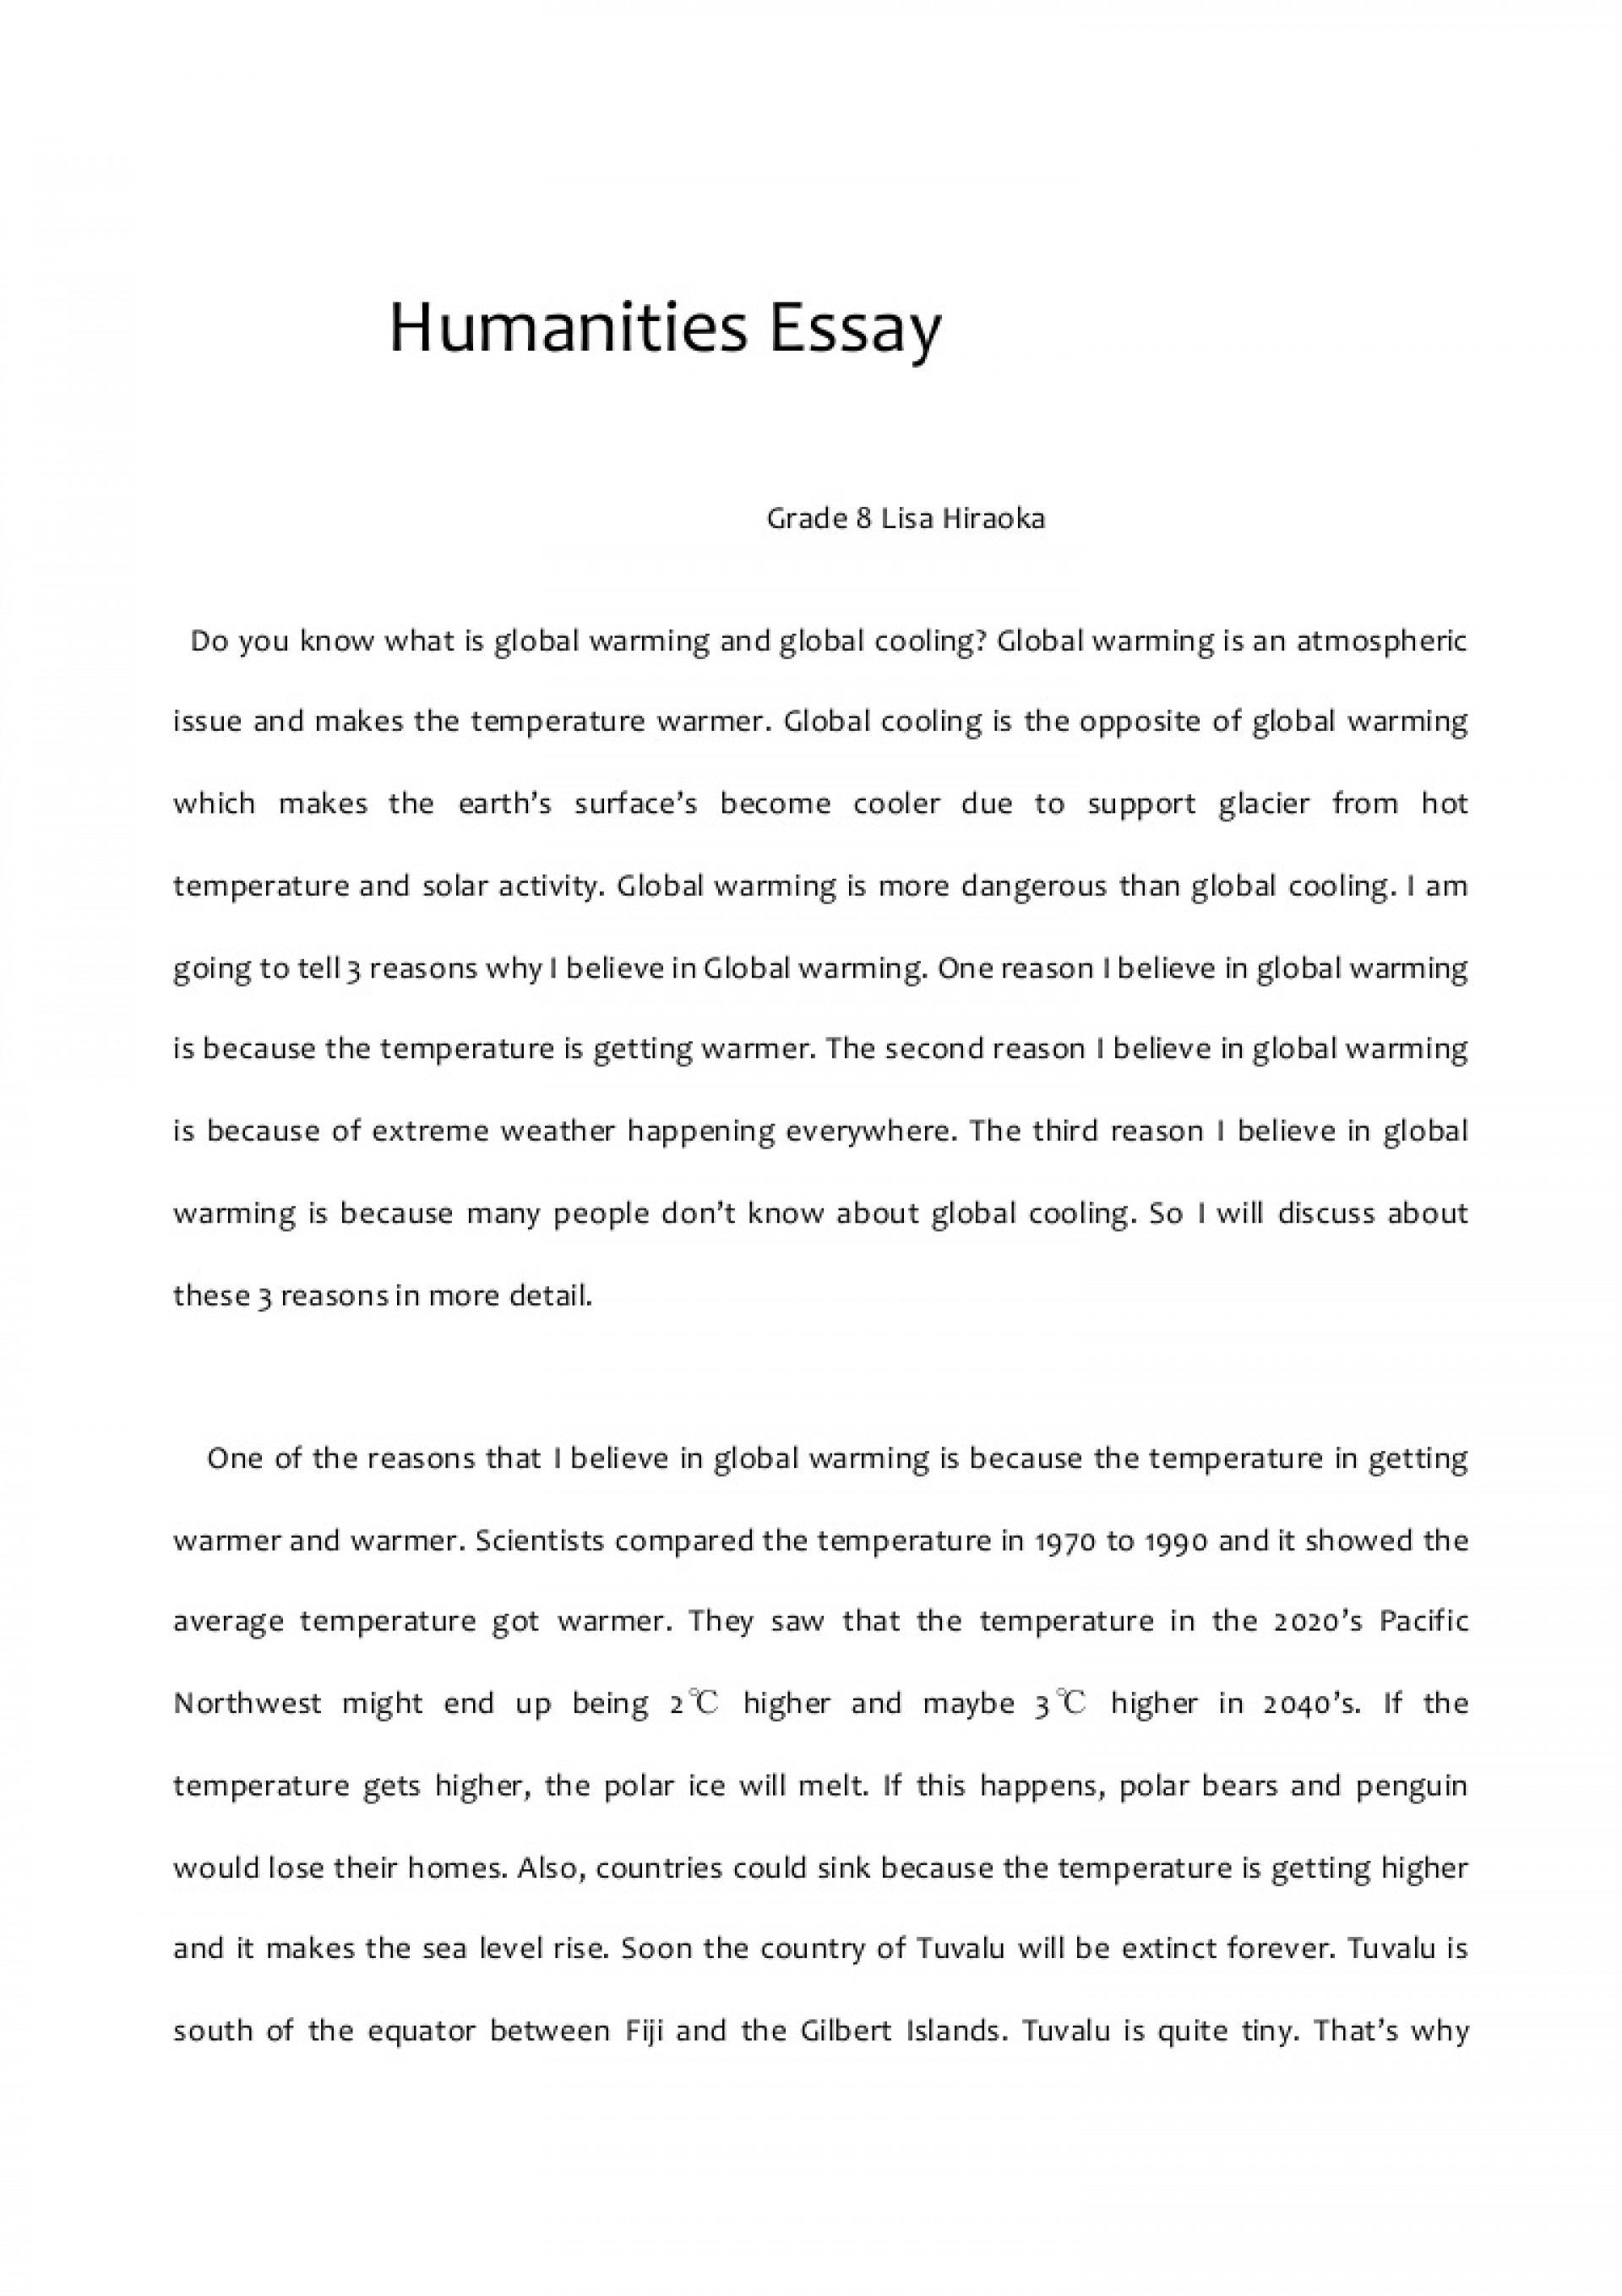 005 Humanitiesessay Phpapp02 Thumbnail Essay On Global Warming Impressive With Introduction And Conclusion Greenhouse Effect In 600 Words 1920